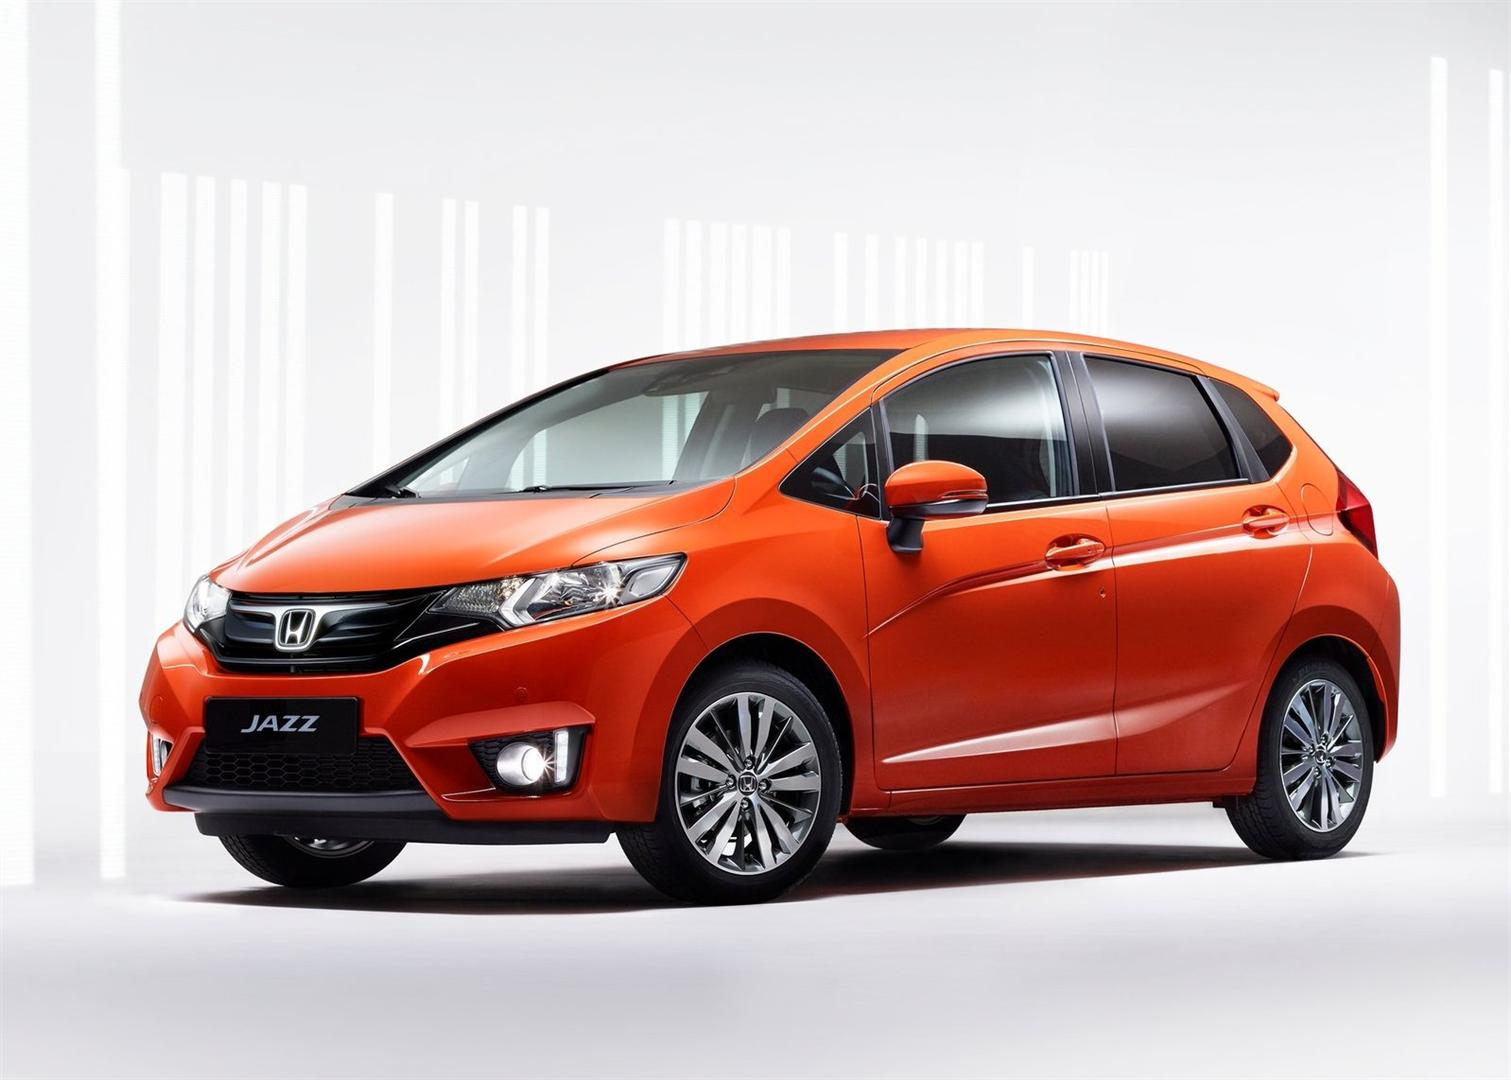 Honda Jazz 2020 Engine Specs With CVT